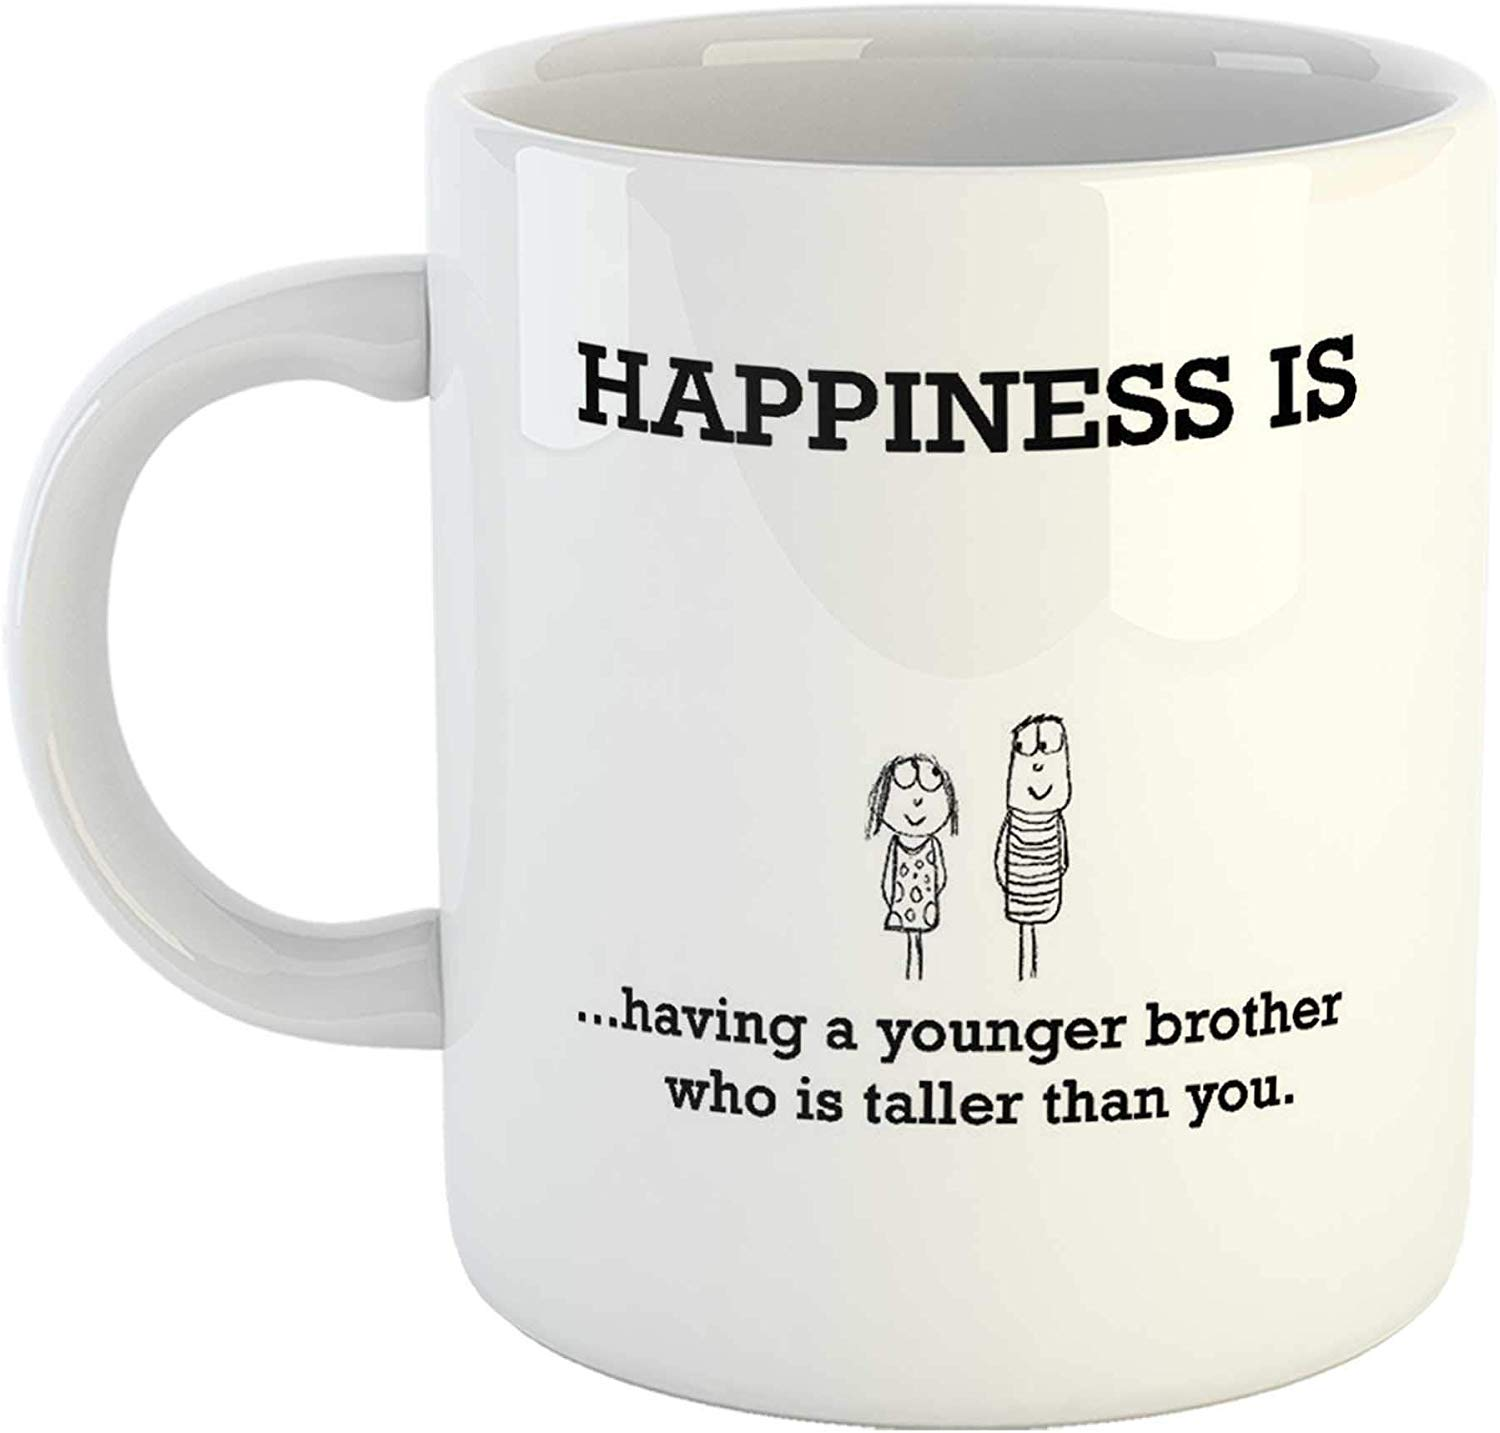 Buy Aj Prints Gift For Younger Brother Cute Happiness Is Having A Younger Brother Who Is Taller Than You Quotes Printed Ceramic Coffee Mug Tea Cup Online At Low Prices In